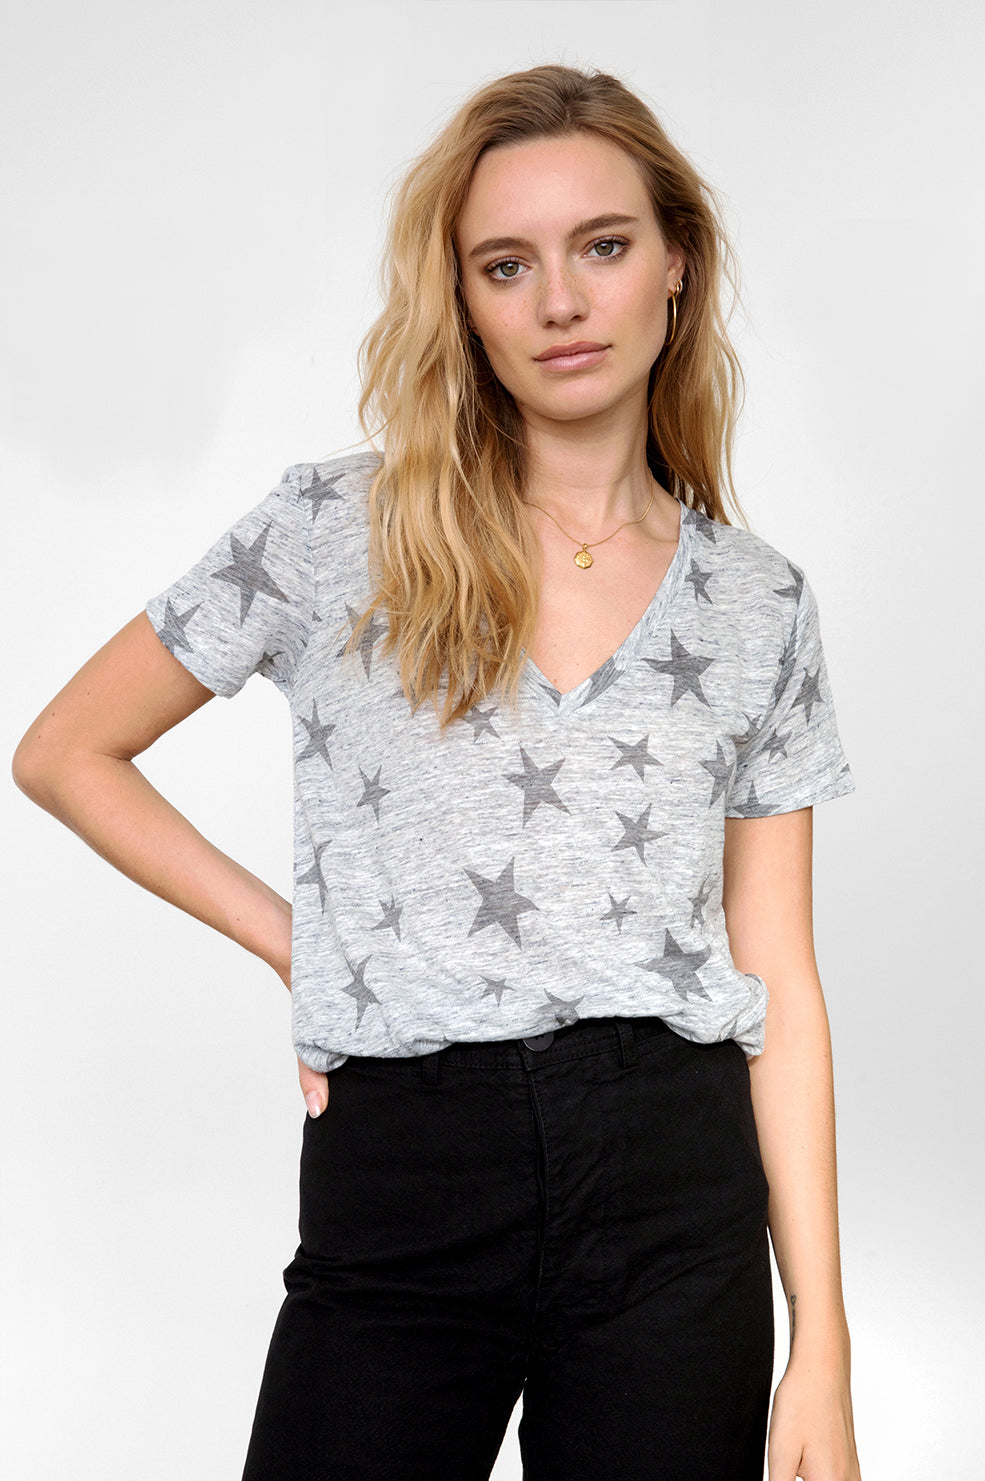 CARA - HEATHER GREY WITH CHARCOAL STARS